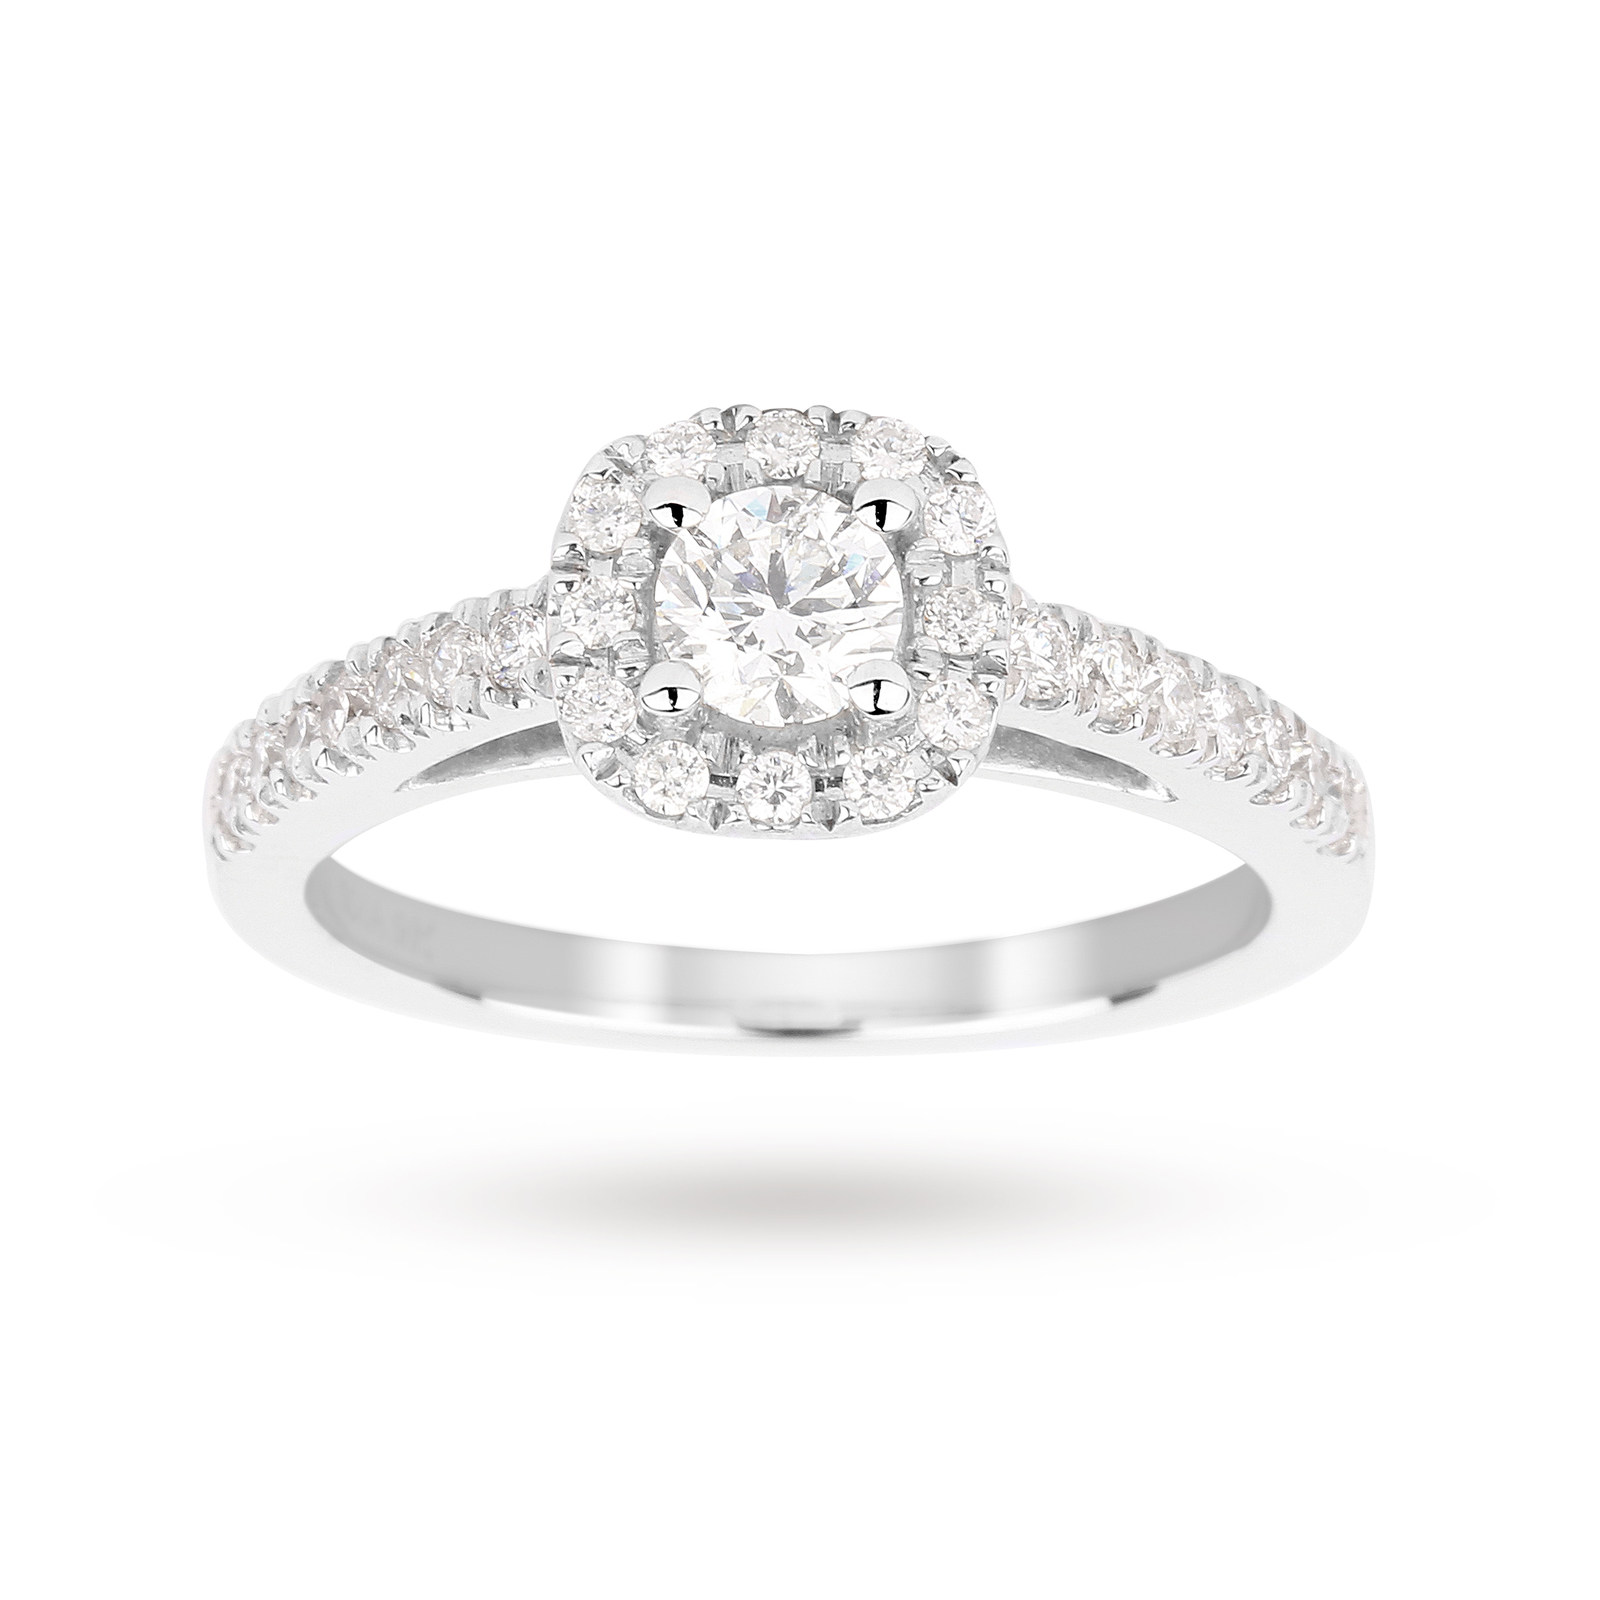 that diamond savings seen certed our all glitters weight typical egl carat htm uk pair have diamonds customers